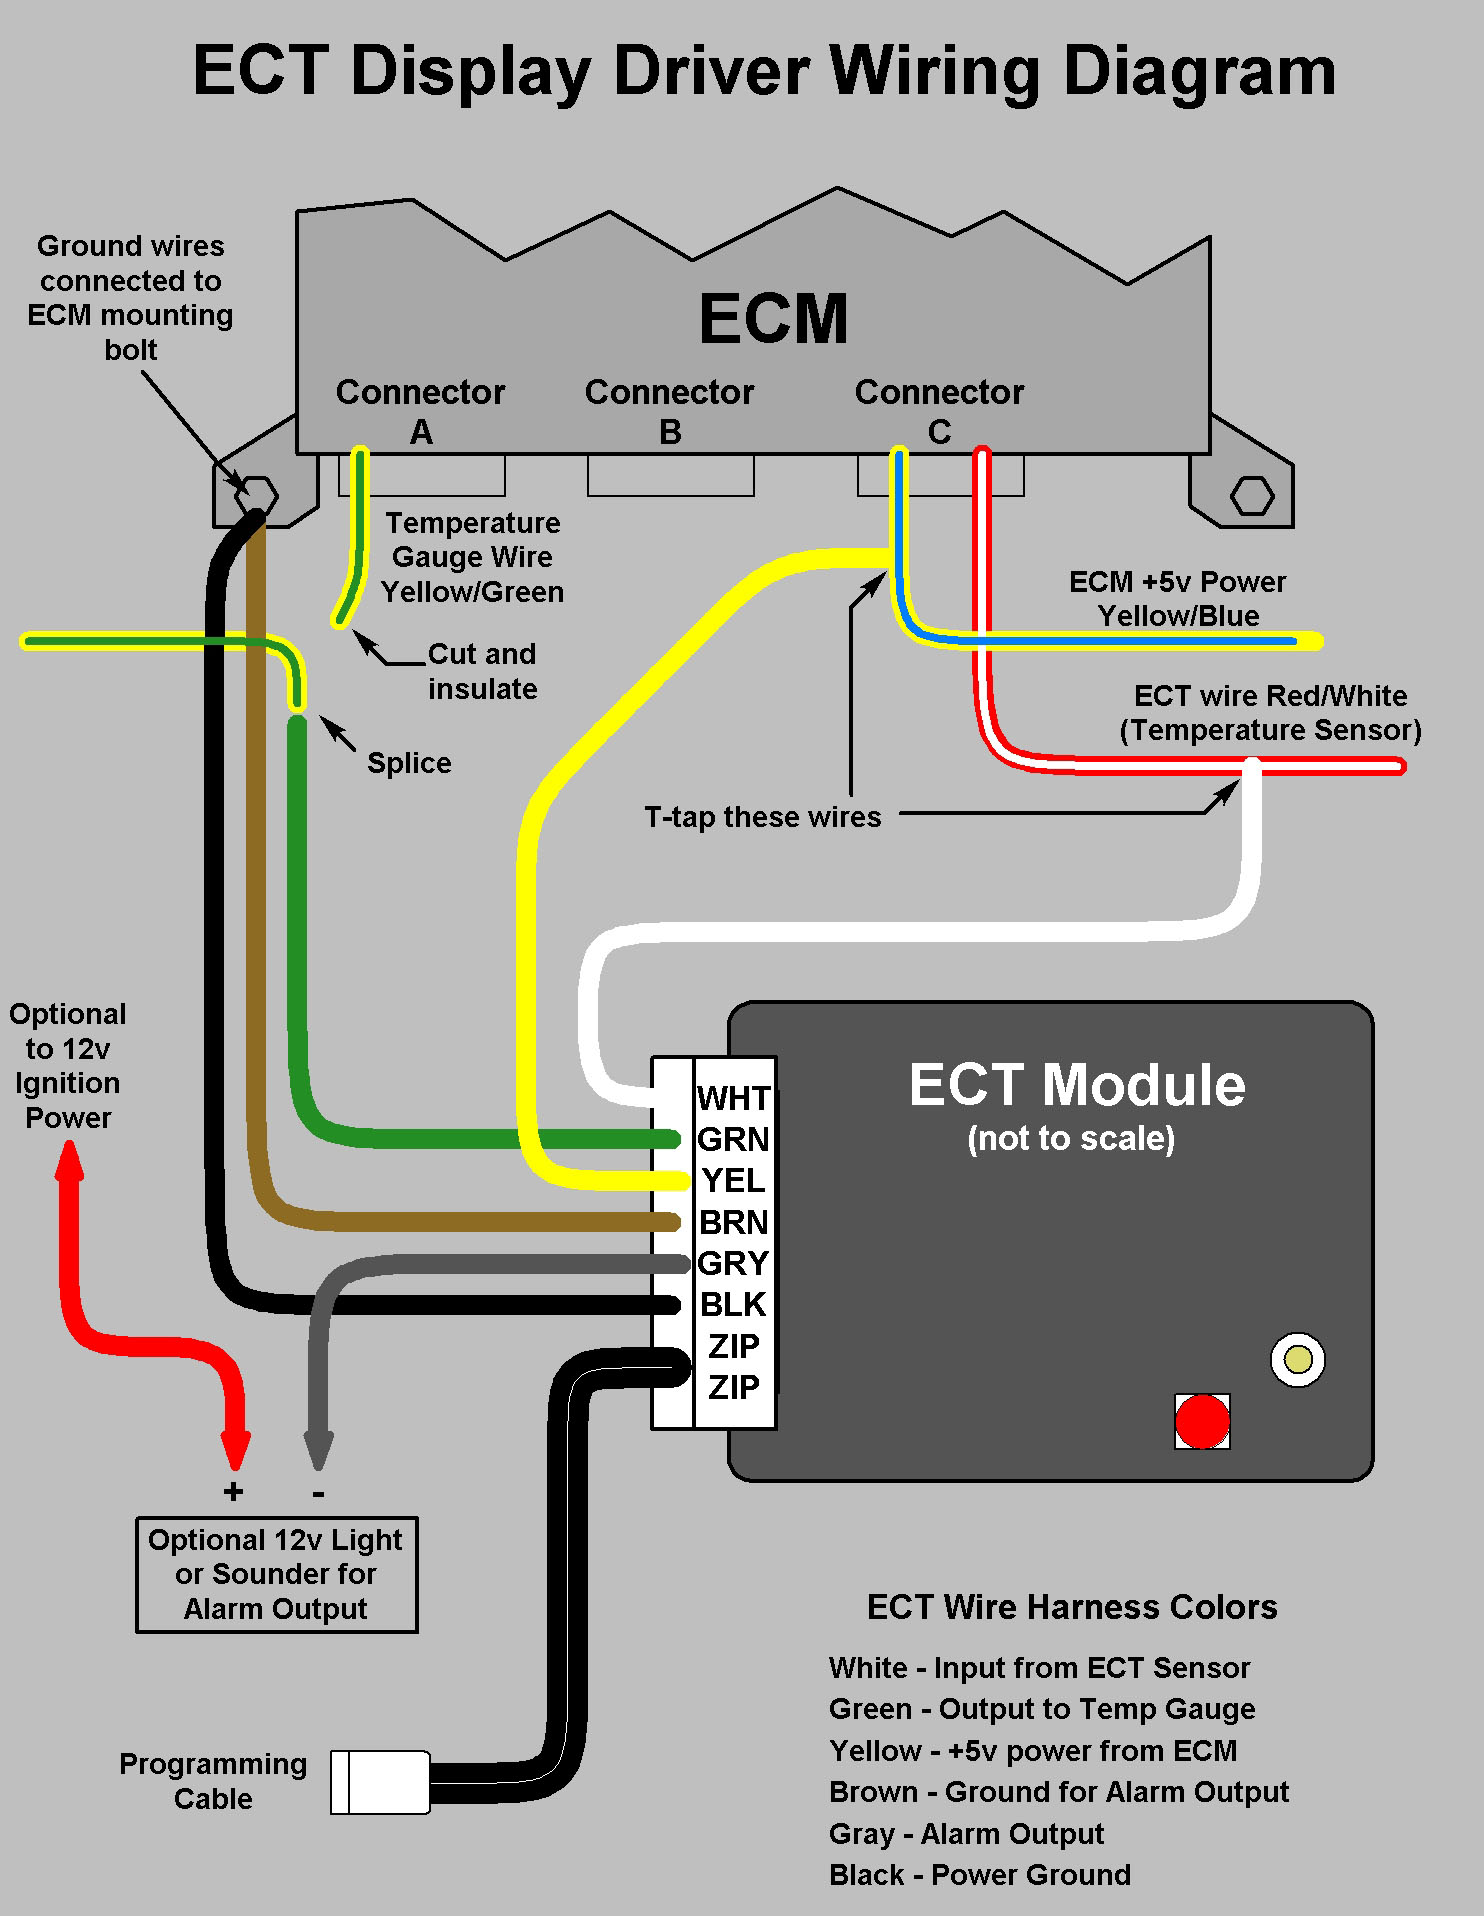 ECT wiring diagram ems wiring diagram management system \u2022 wiring diagrams j squared co aem fic wiring harness at alyssarenee.co